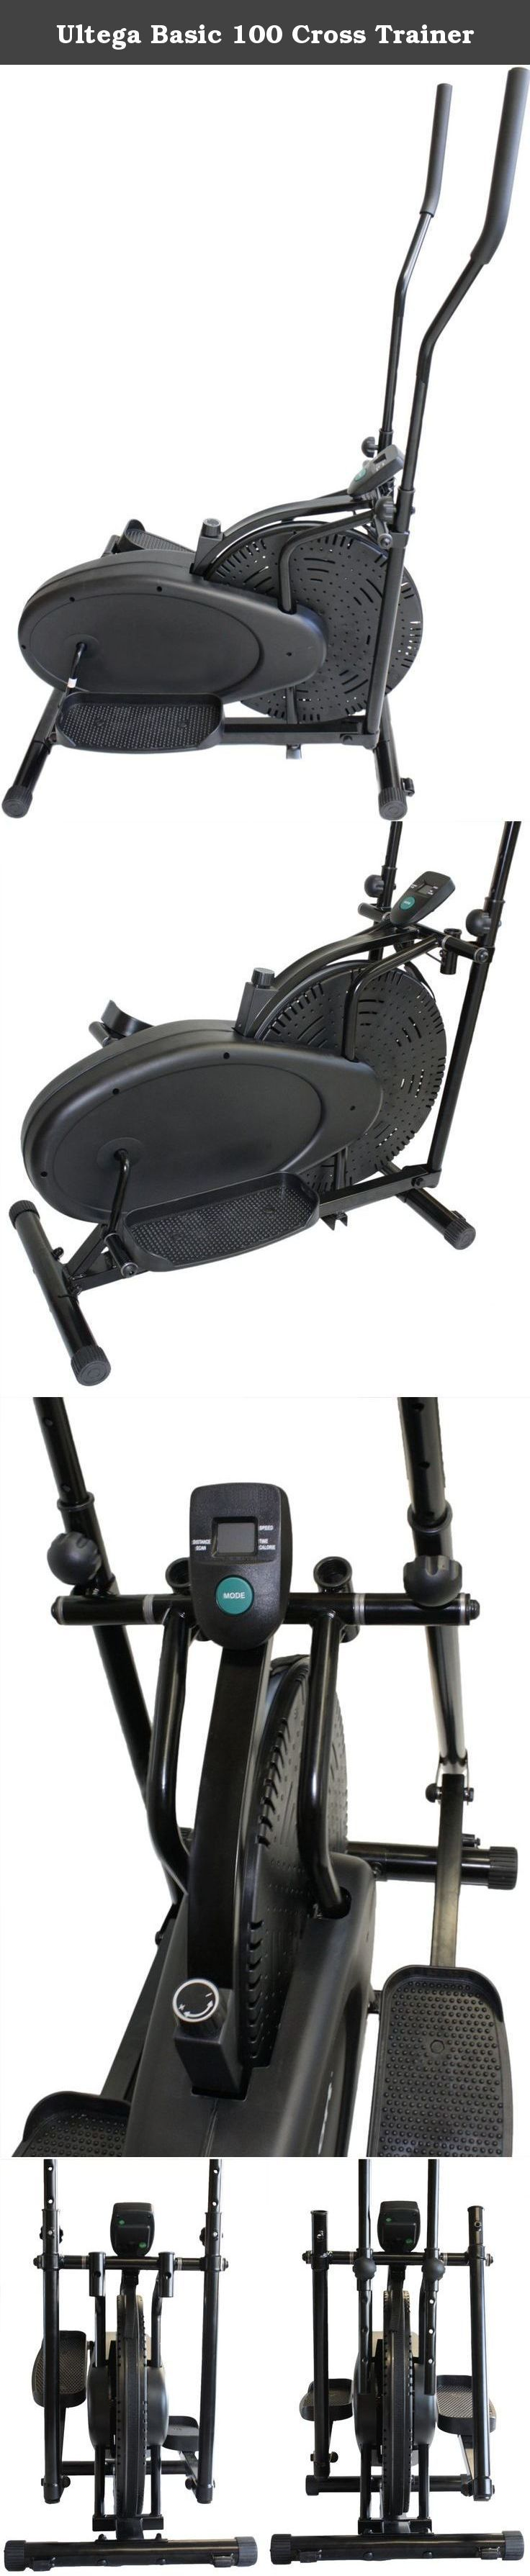 Ultega Basic 100 Cross Trainer. TUV/GS tested - with a chain/fanwheel system The grip height is 4-way adjustable / Grips can be placed in swinging or fixed positions Featuring a 2-way principle for training the legs, hips, posterior, arm & shoulder muscles Training computer with multifaceted functions: time, distance, scan, calories, speed The maximum user weight is up to 242 lbs. (110 kg).